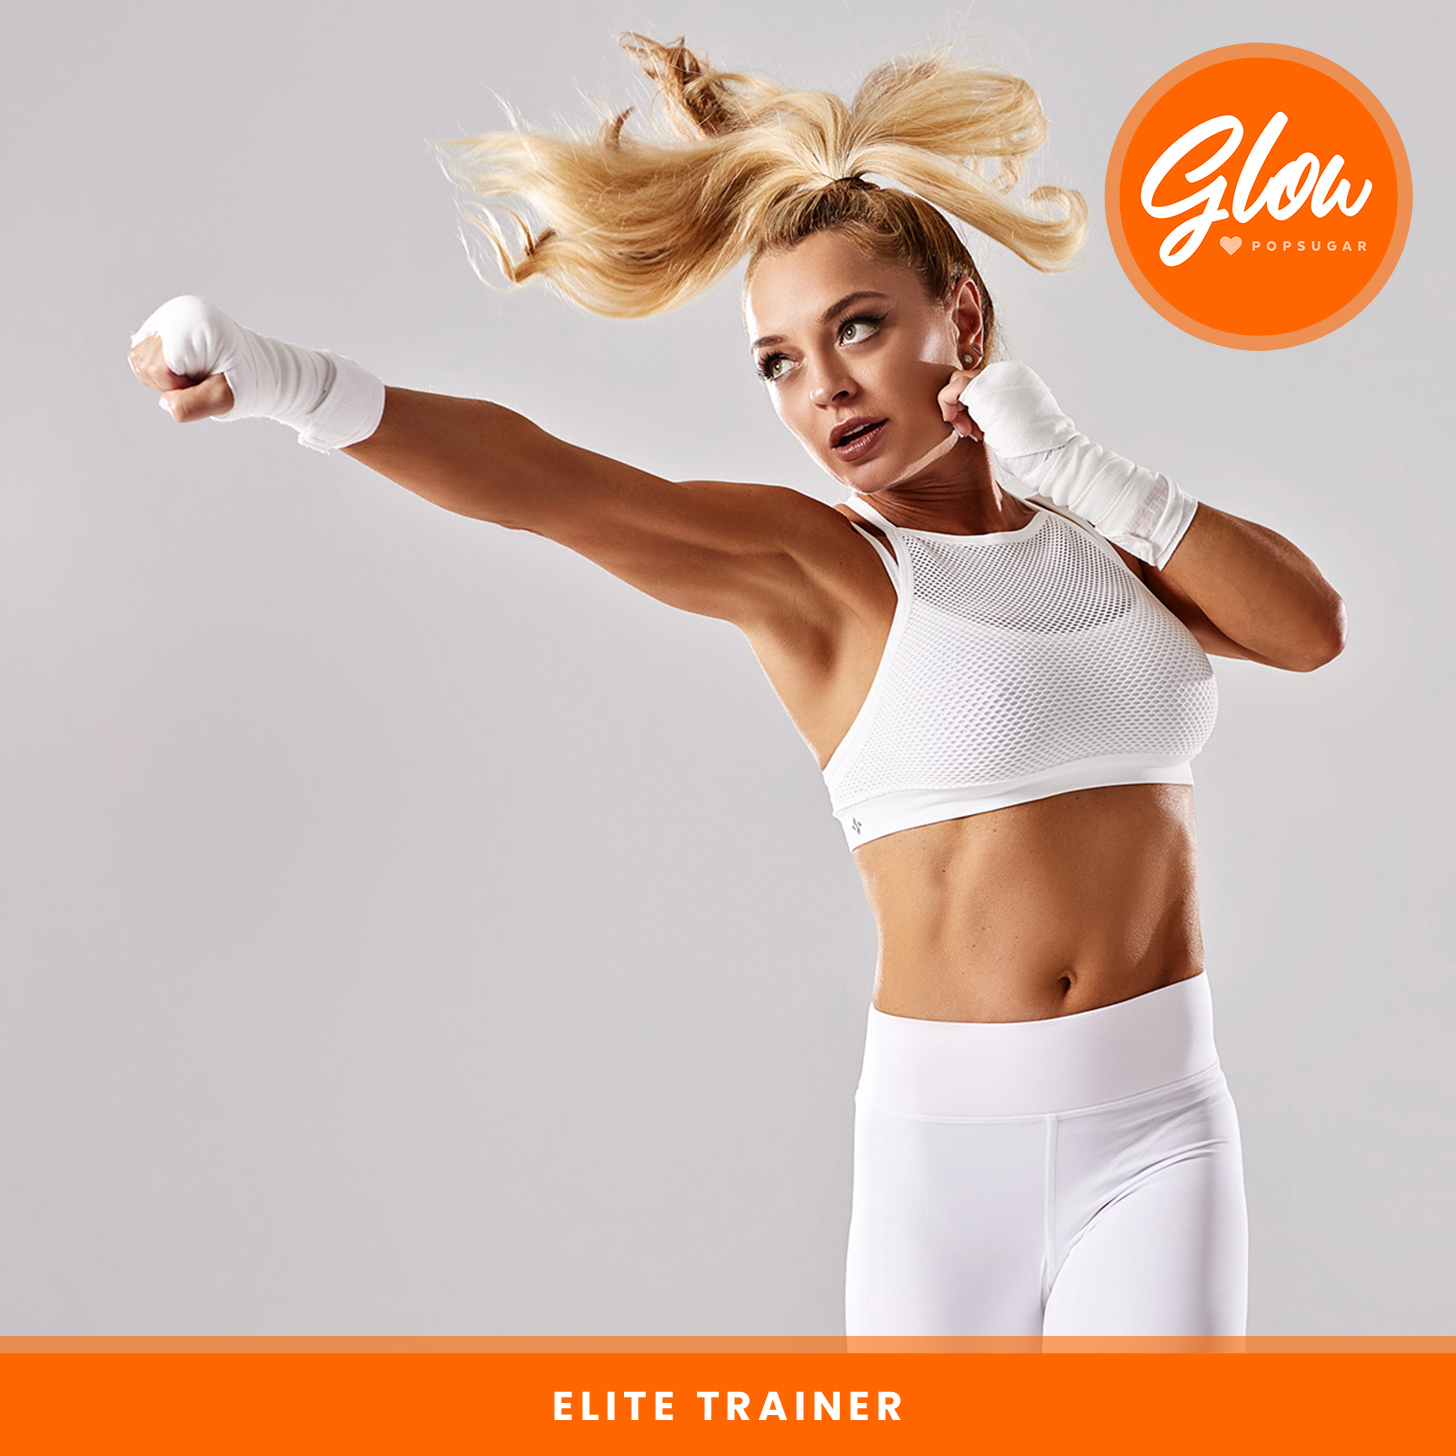 GLOW BY POPSUGAR - Find Boxing & Bubbles now on GLOW